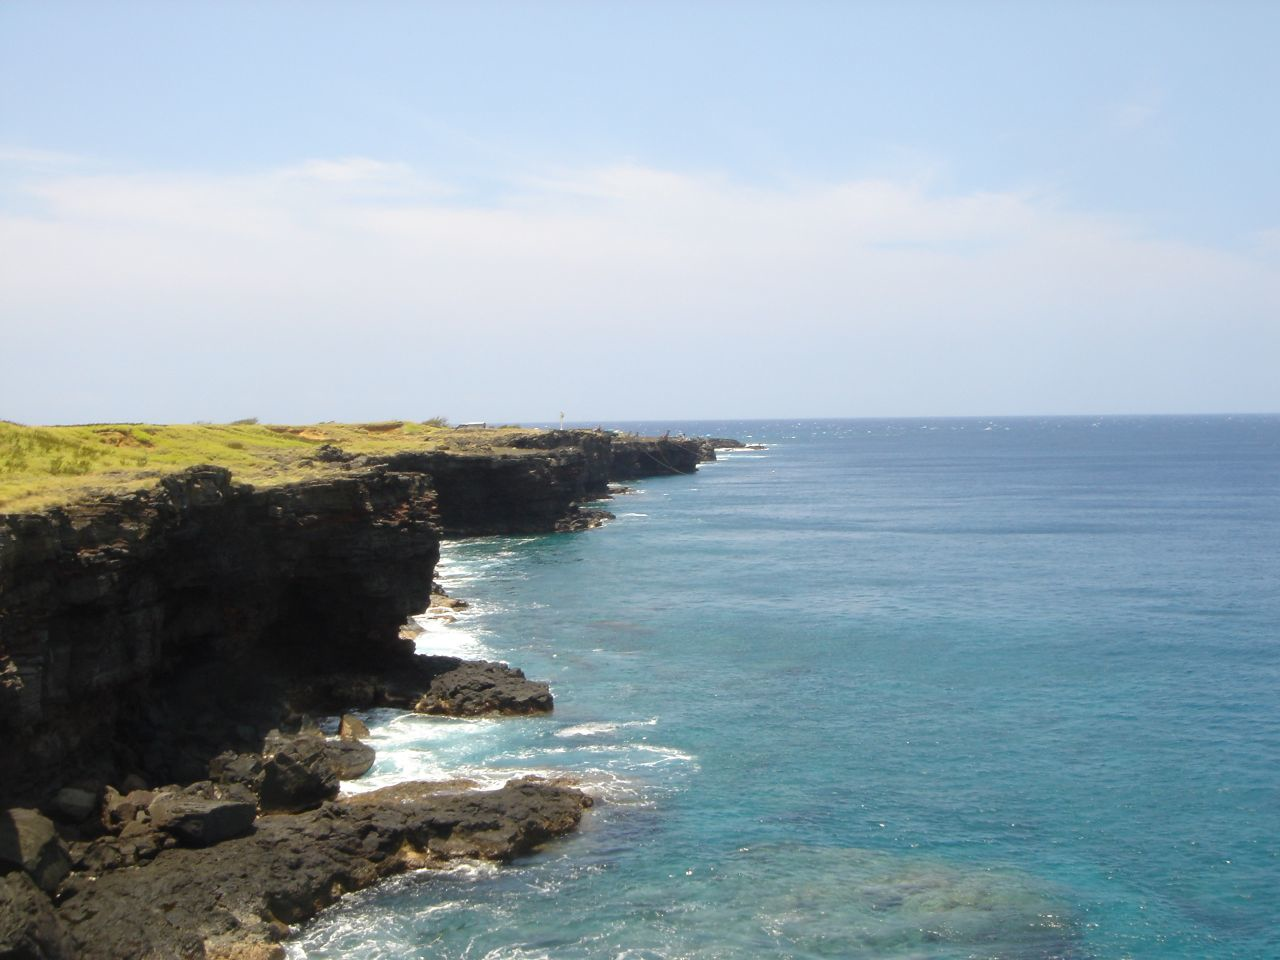 Coastal cliffs in Hawaii